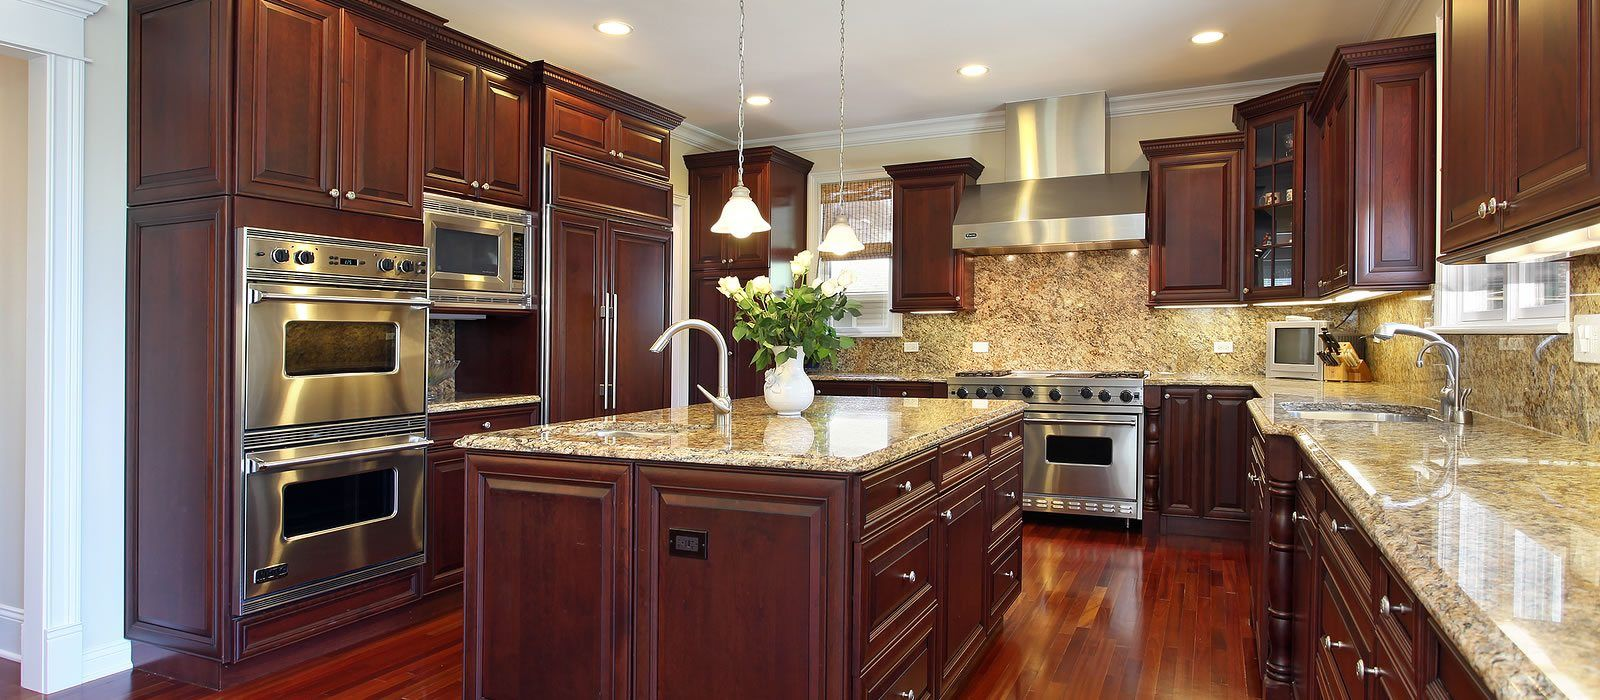 New For Kitchens 3 Important Considerations Before You Invest In New Kitchen